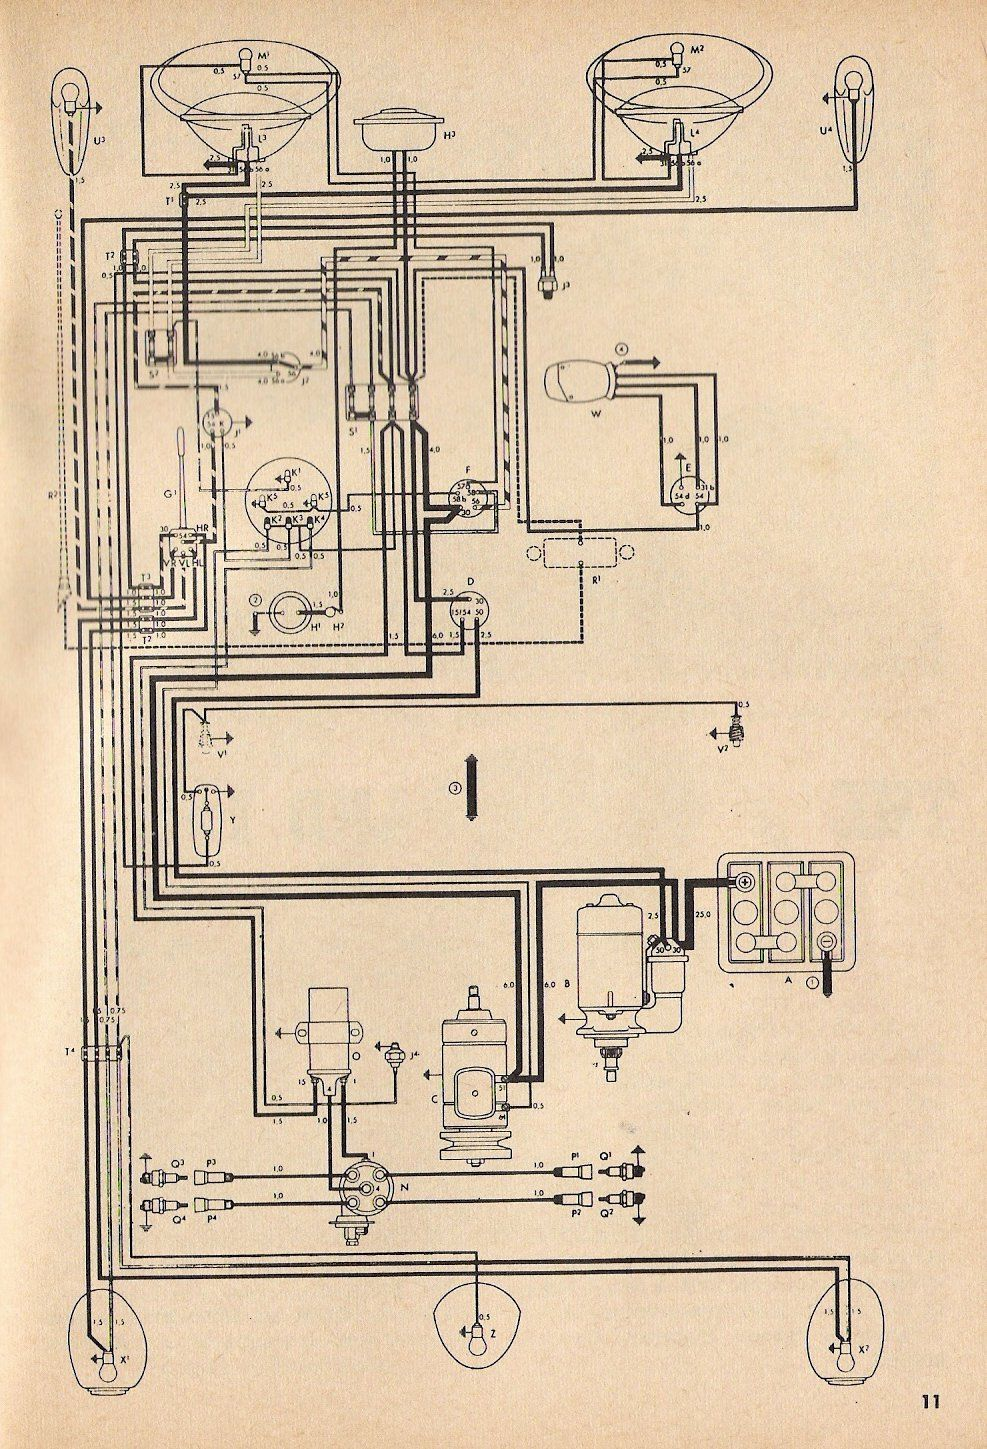 1957 Beetle Wiring Diagram Thegoldenbug Com In 2020 Vw Beetles Beetle Diagram